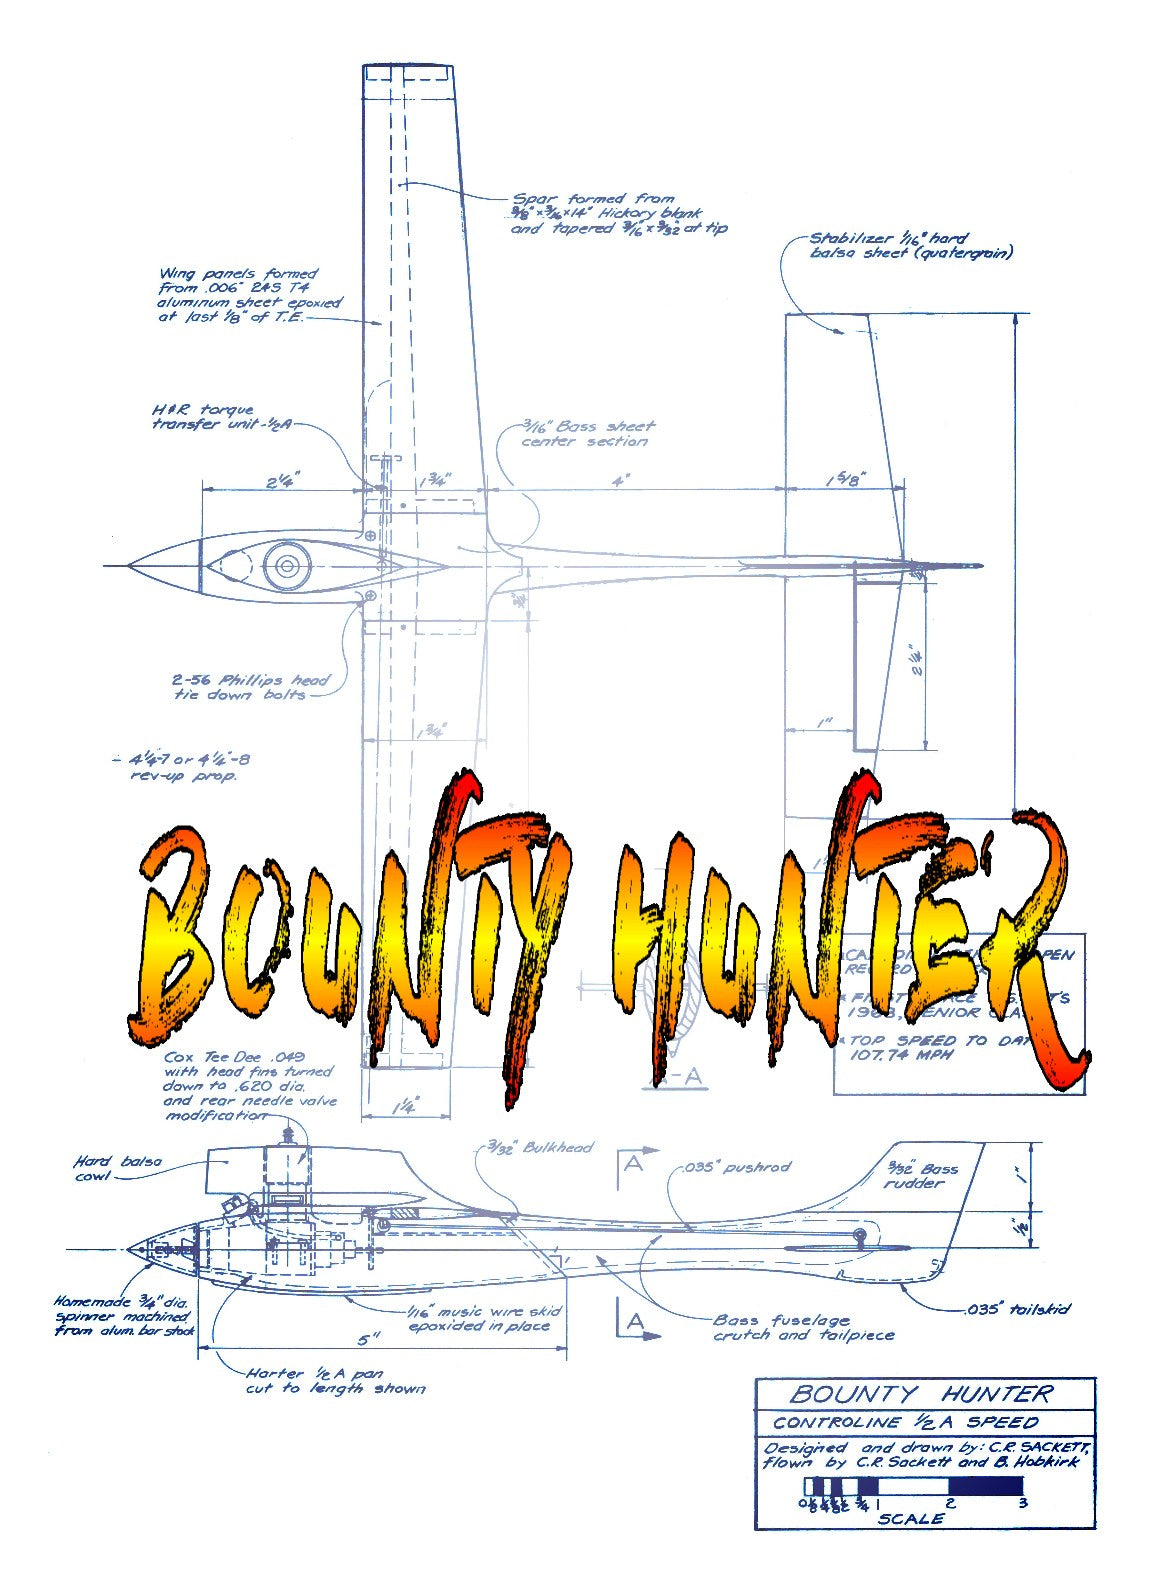 Full Size Printed Plan 1973 1/2 A Control Line Speed  BOUNTY HUNTER W/S 14 INCHES ,TEE DEE .049 ENGINE